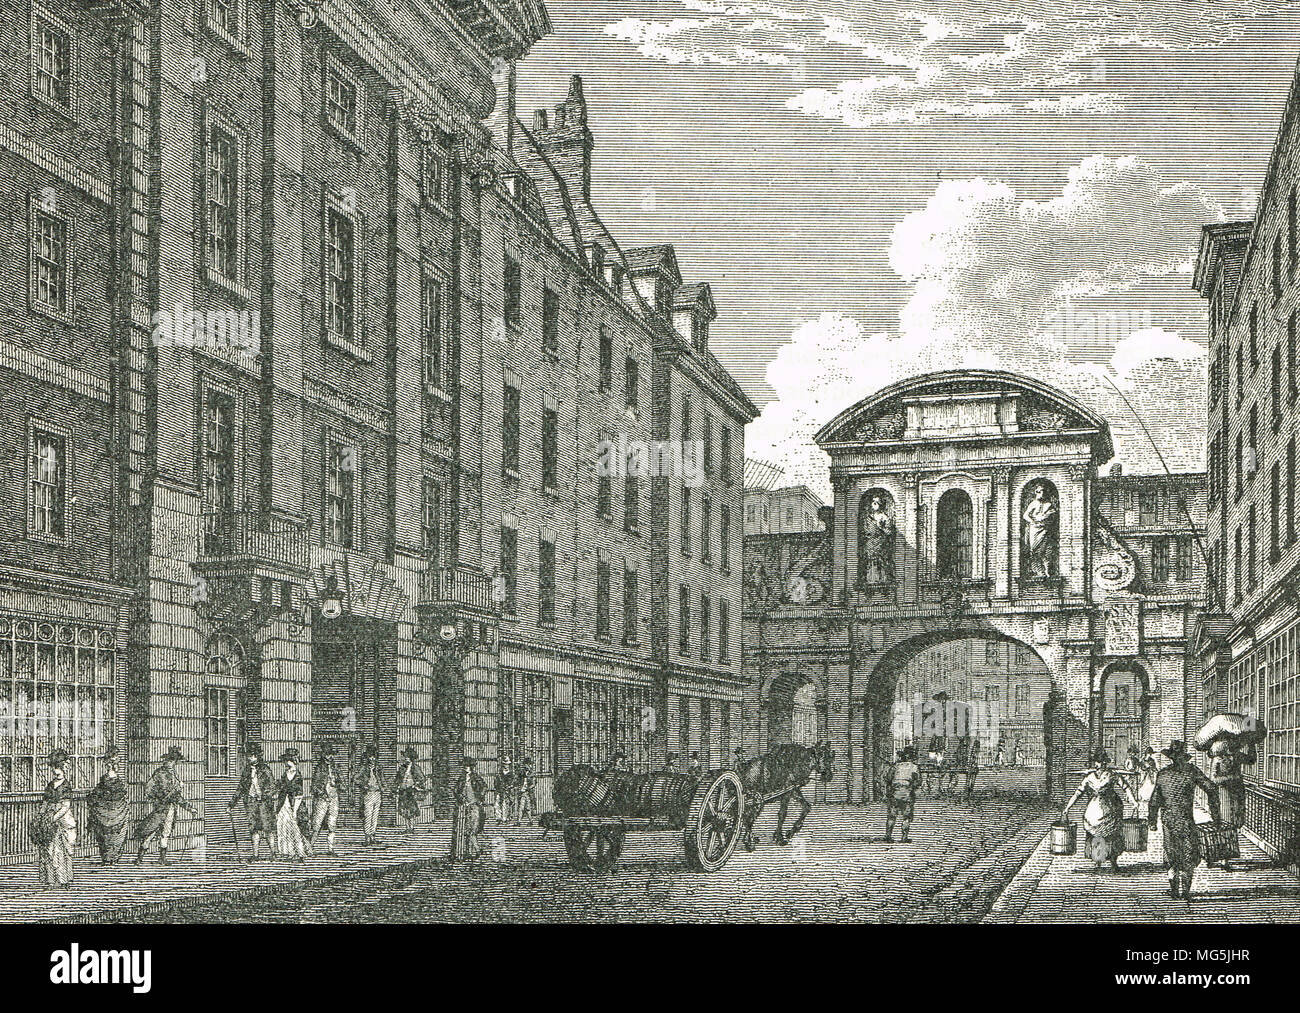 Temple Bar, London, England in 1800 - Stock Image